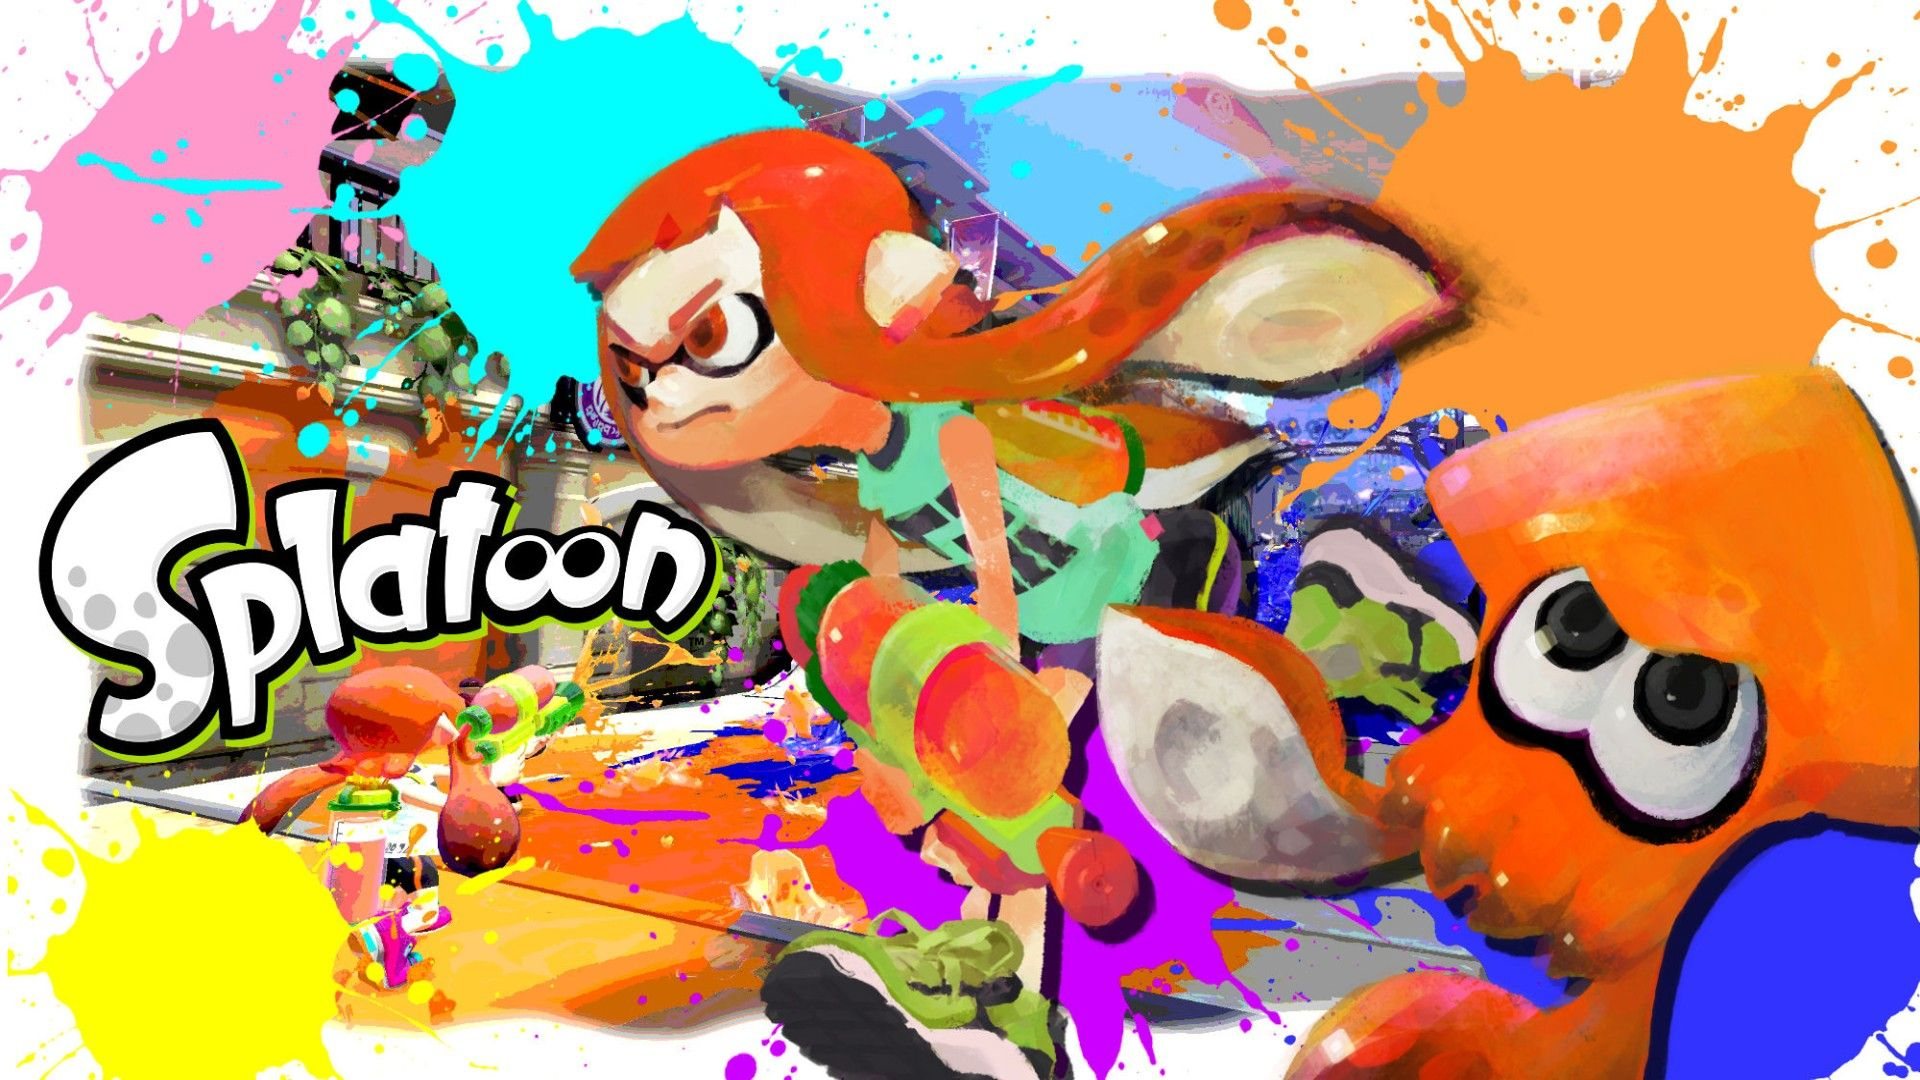 splatoon wallpaper by xxzicexx - photo #4